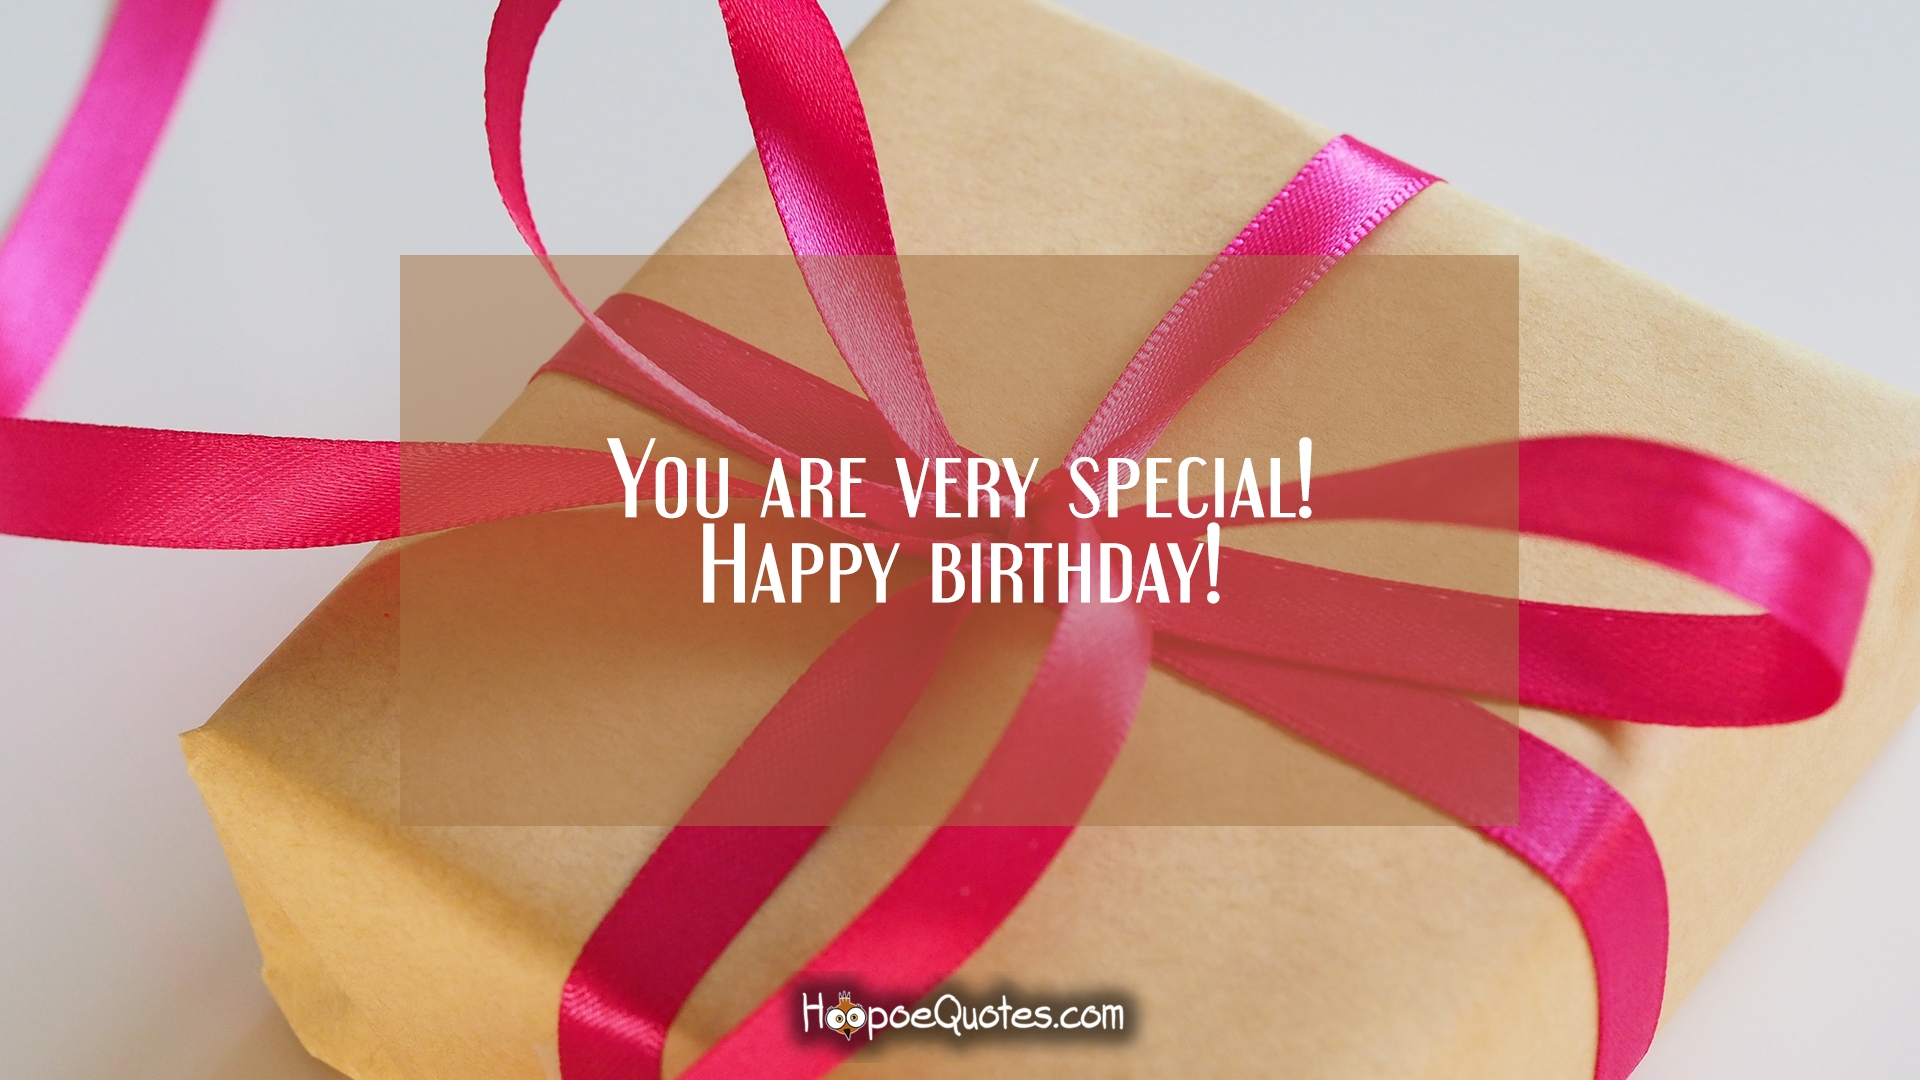 Happy Birthday Quotes For Best Friend ~ Happy birthday best friend birthday wishes for best friend with